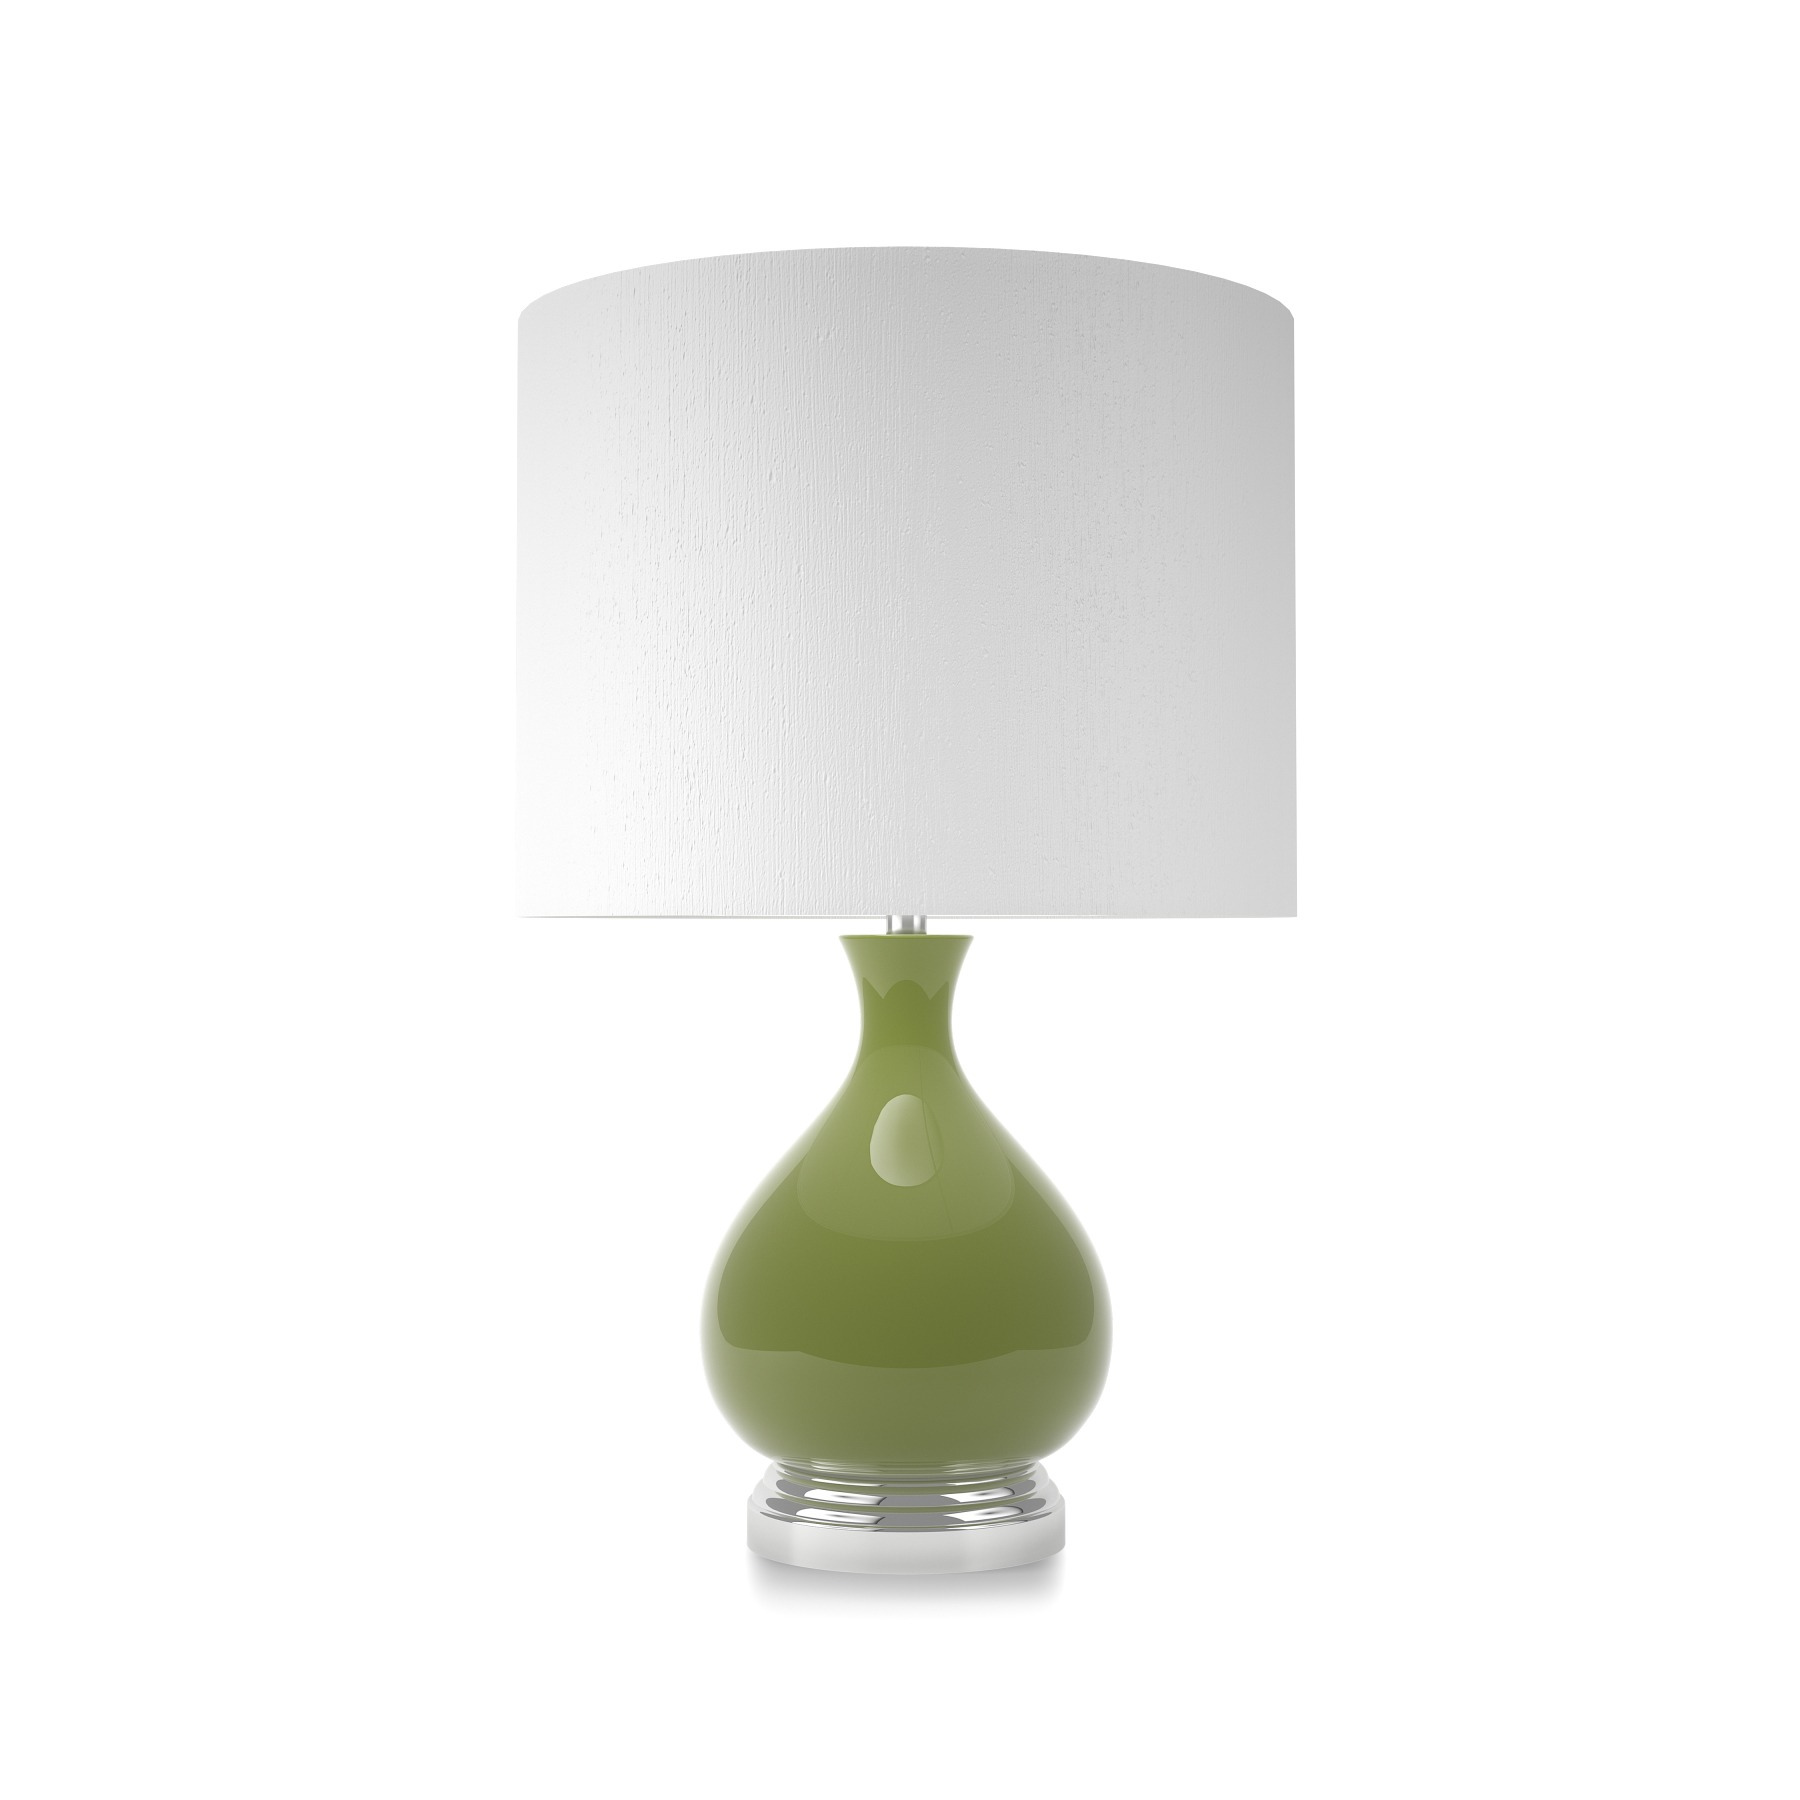 Designer Lamps and Shades